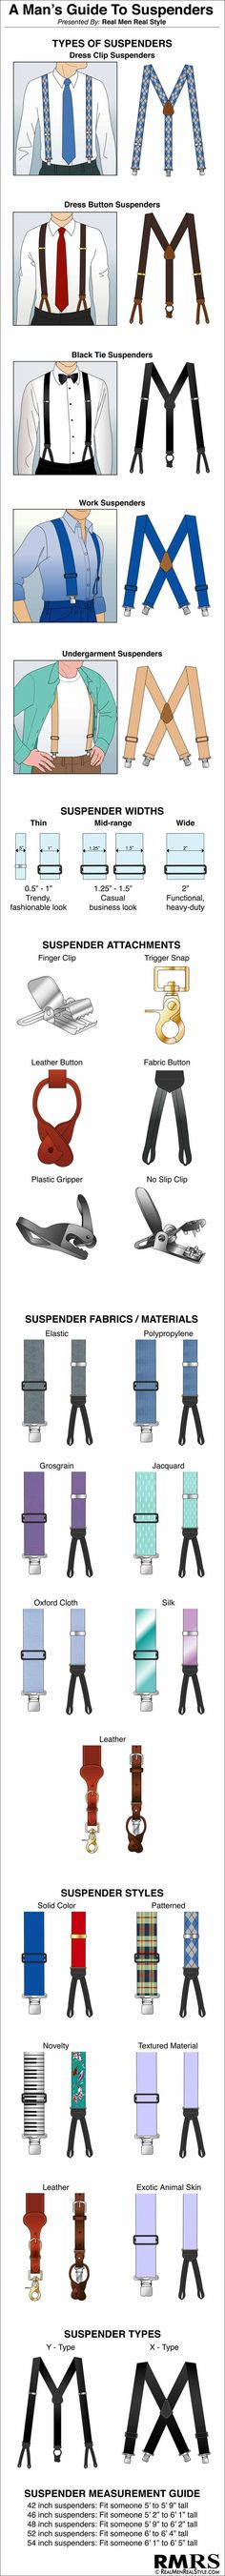 See Infographic on a Man's Guide To Suspenders Then Come on over to view all our suspenders styles!